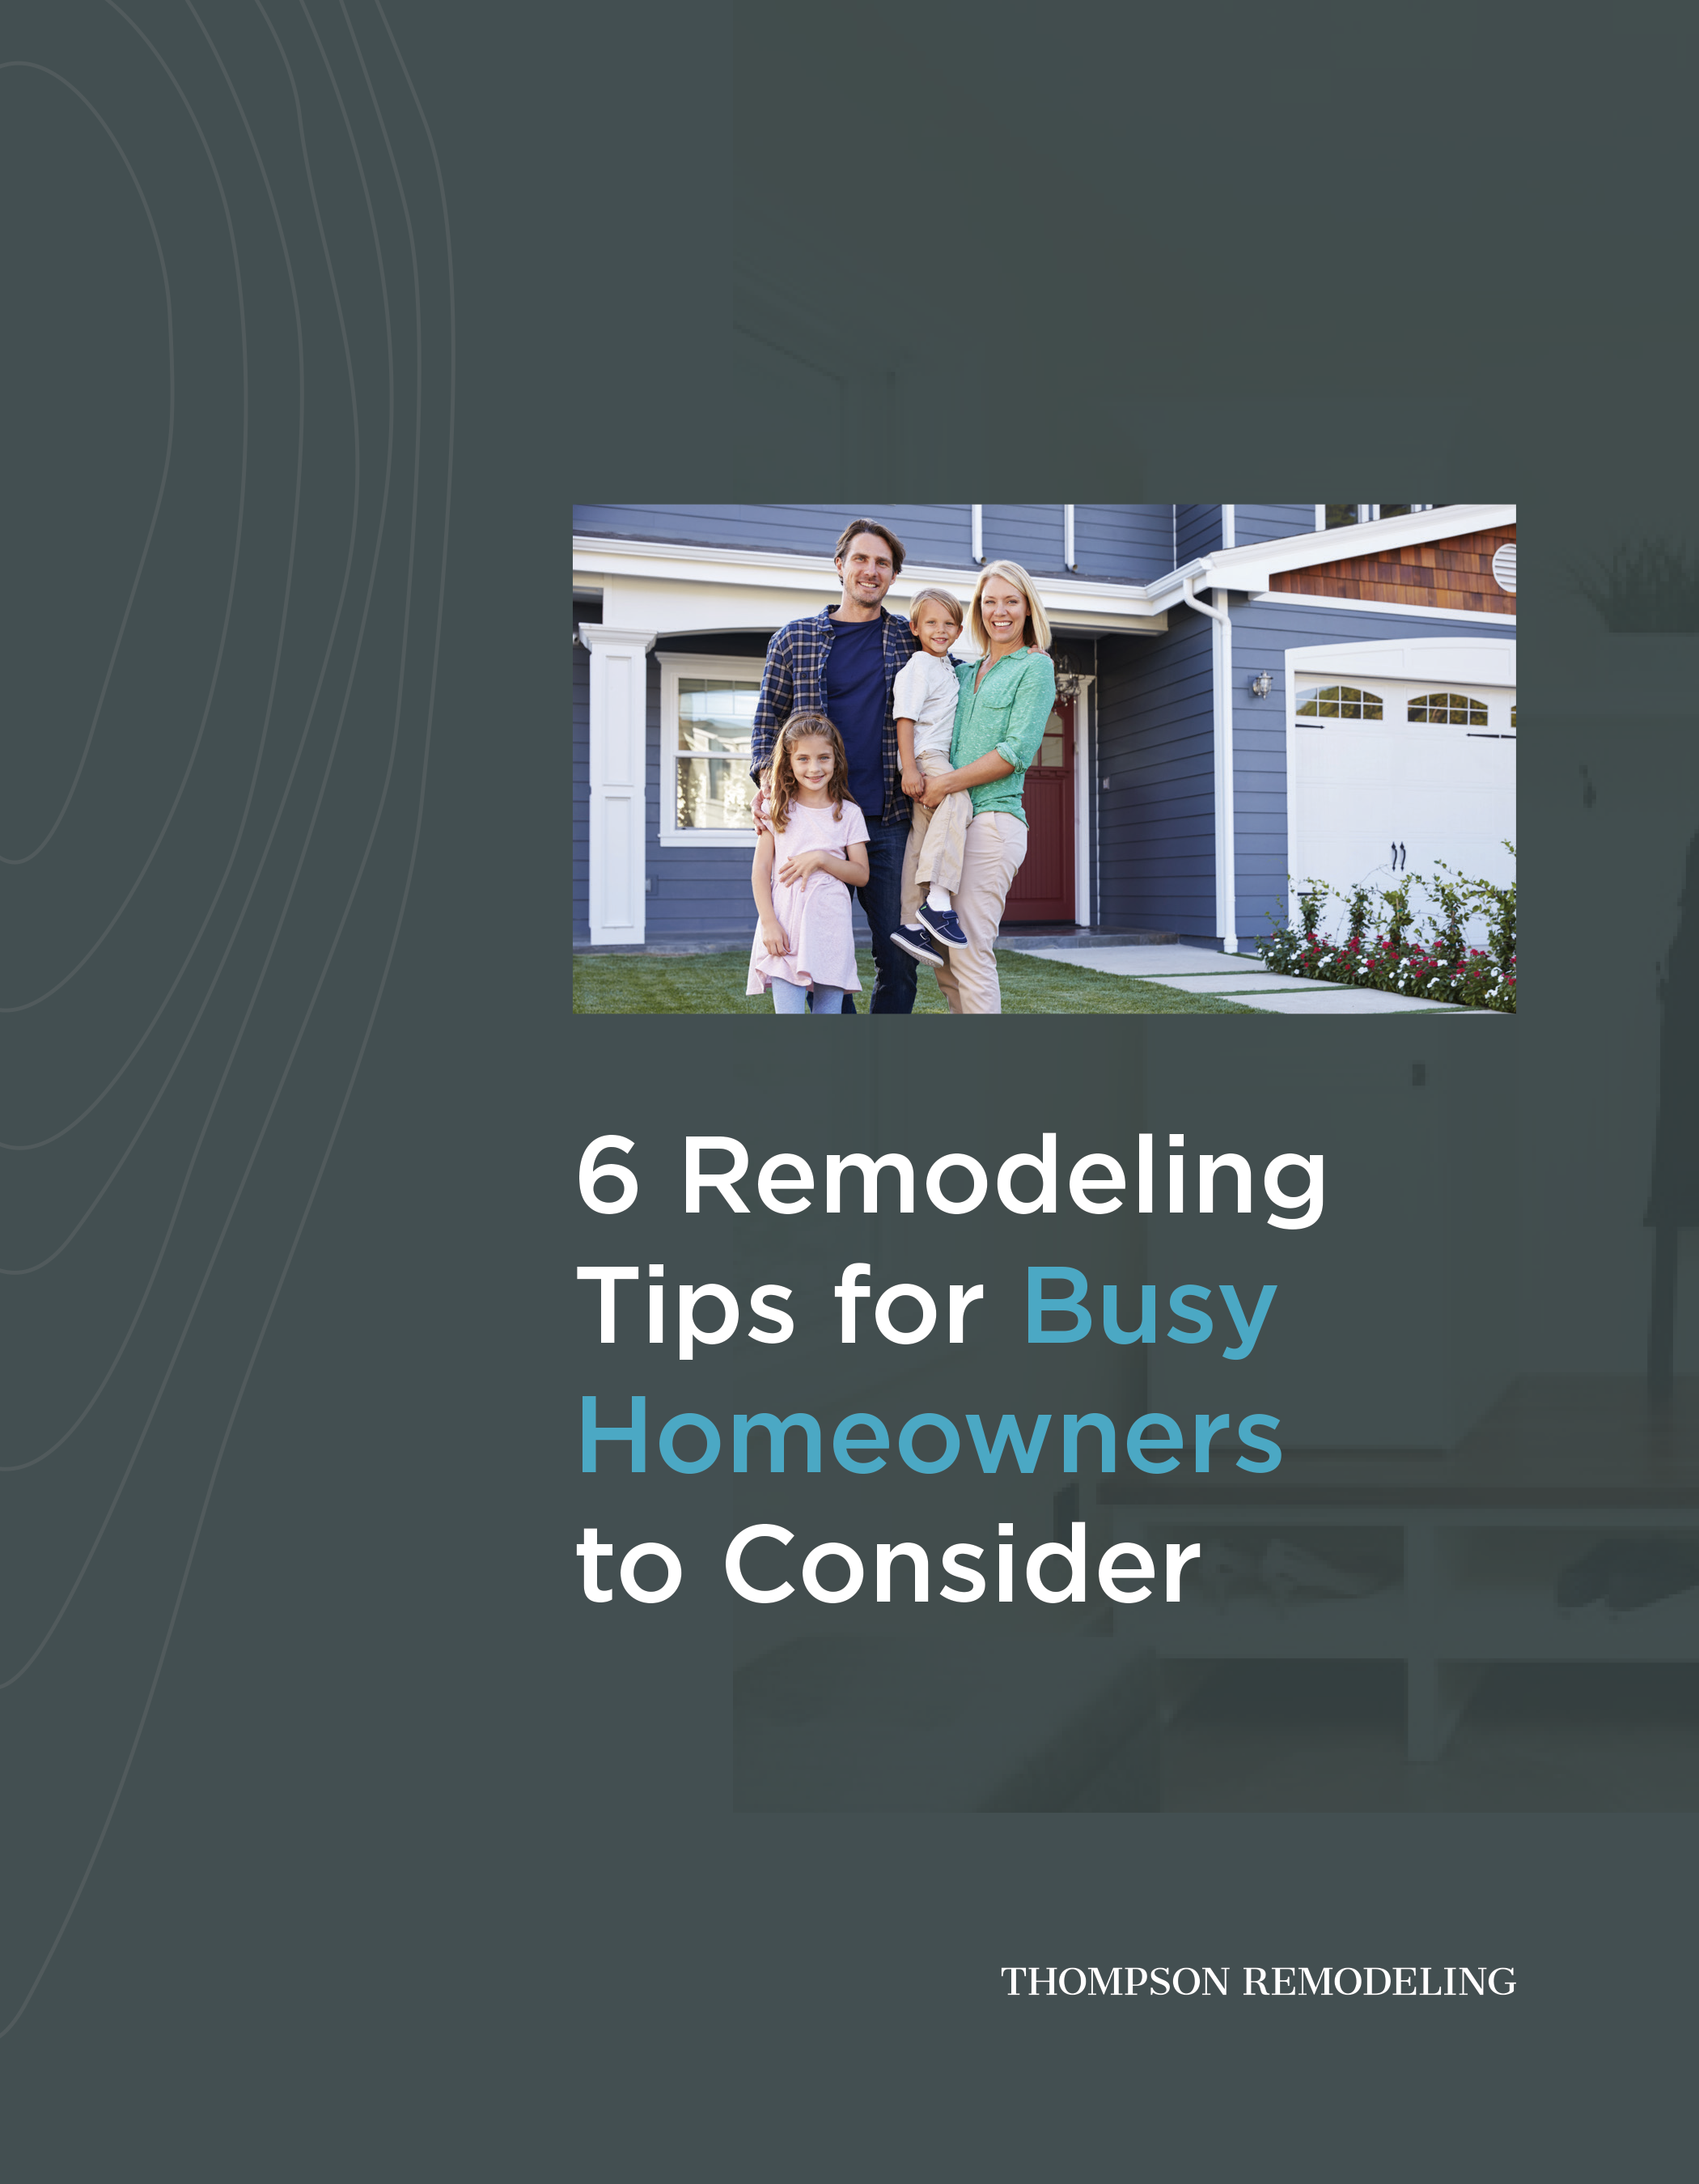 6 Remodeling Tips cover